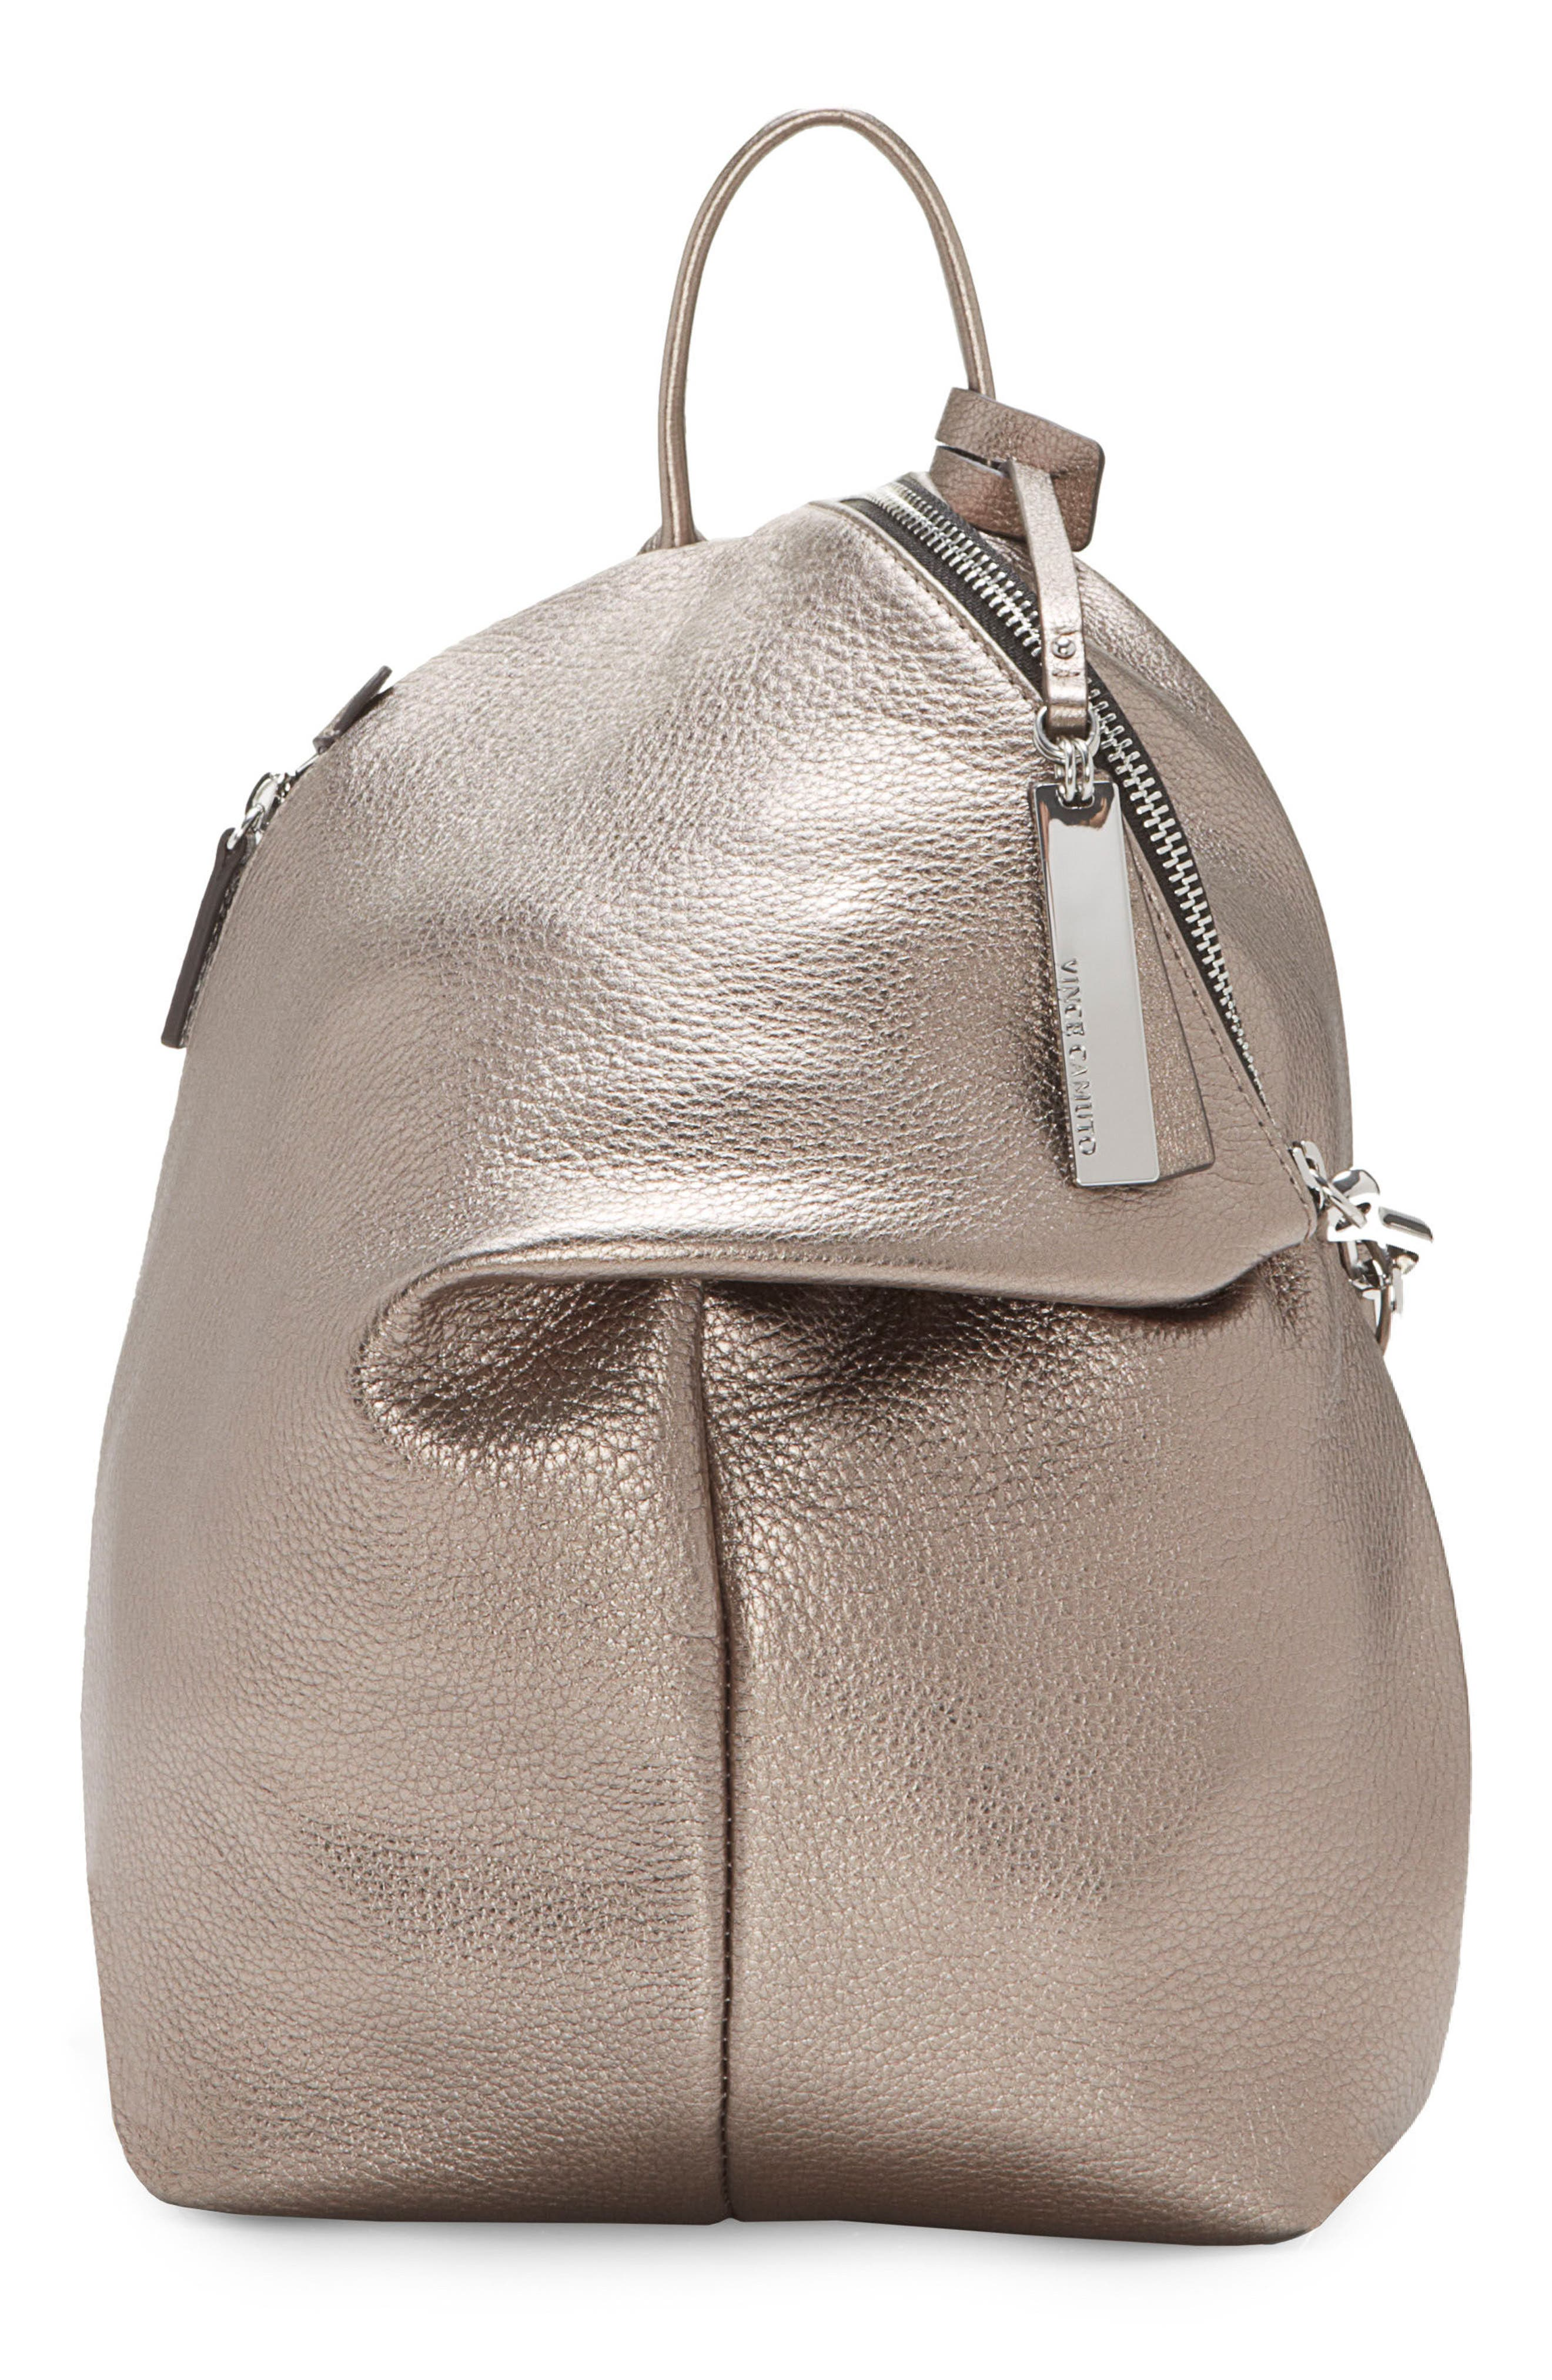 Main Image - Vince Camuto Small Giani Leather Backpack